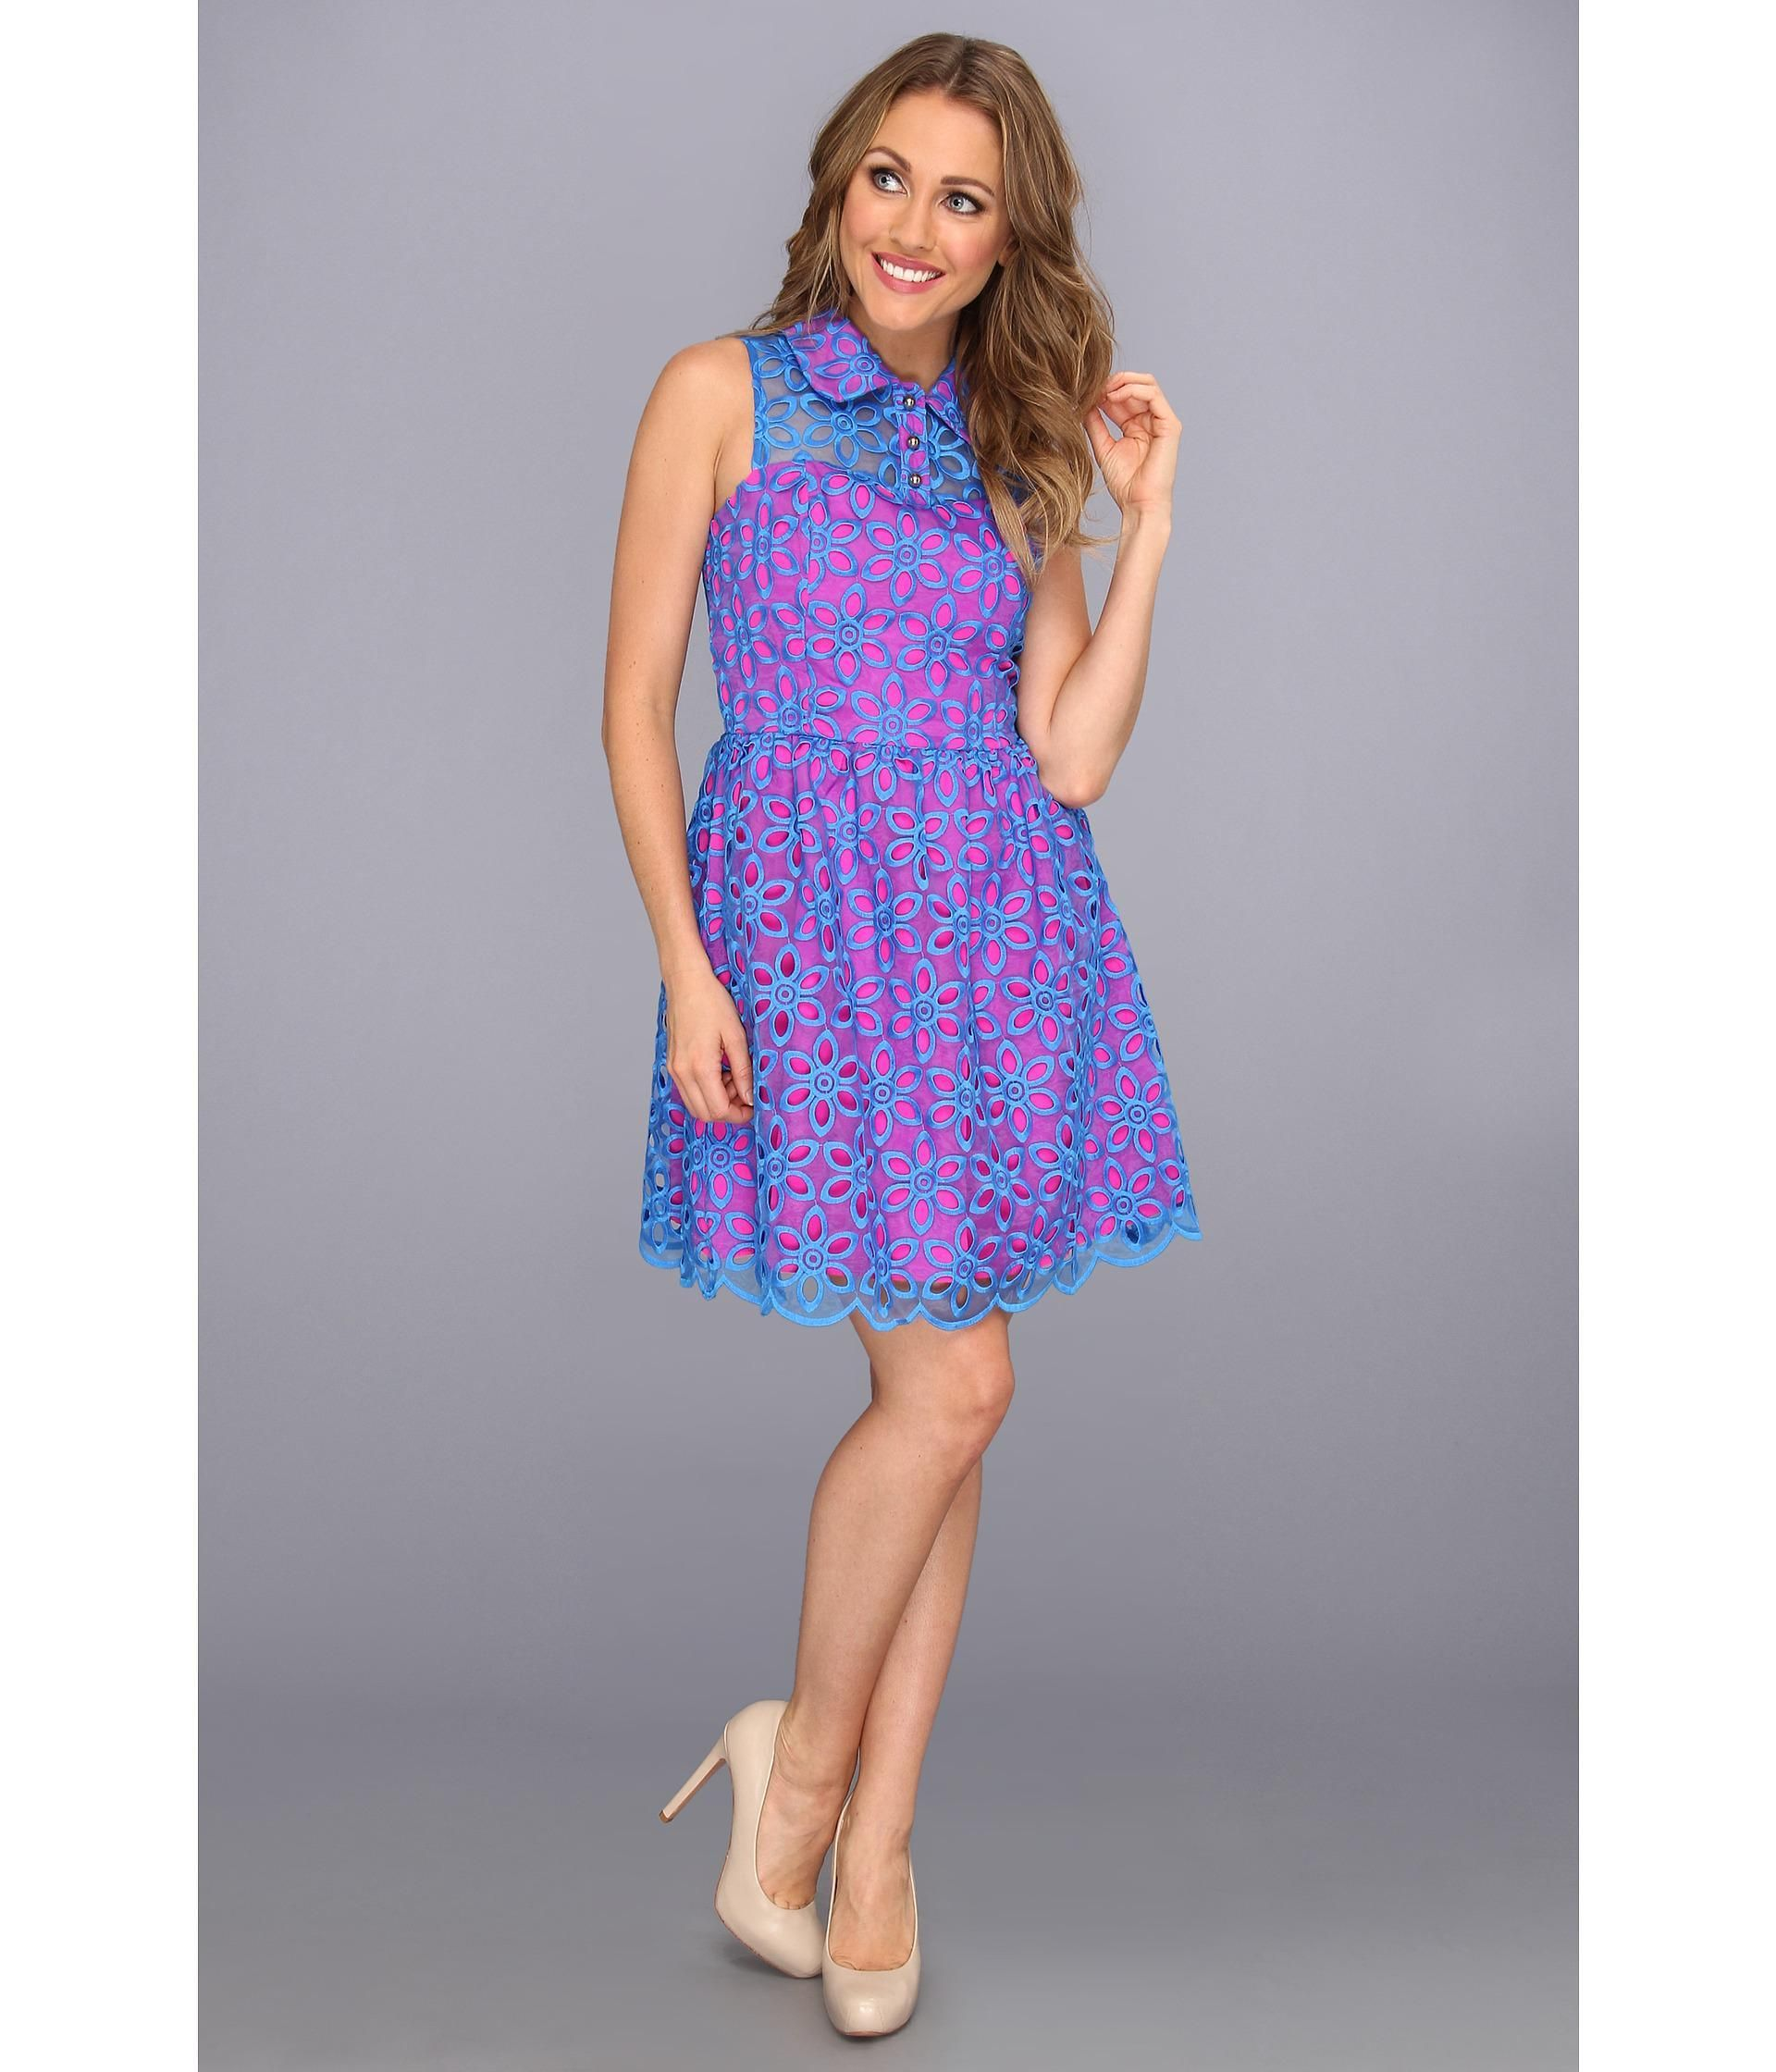 Even sophisticated ladies need a pop of color. This Lilly Pulitzer ...